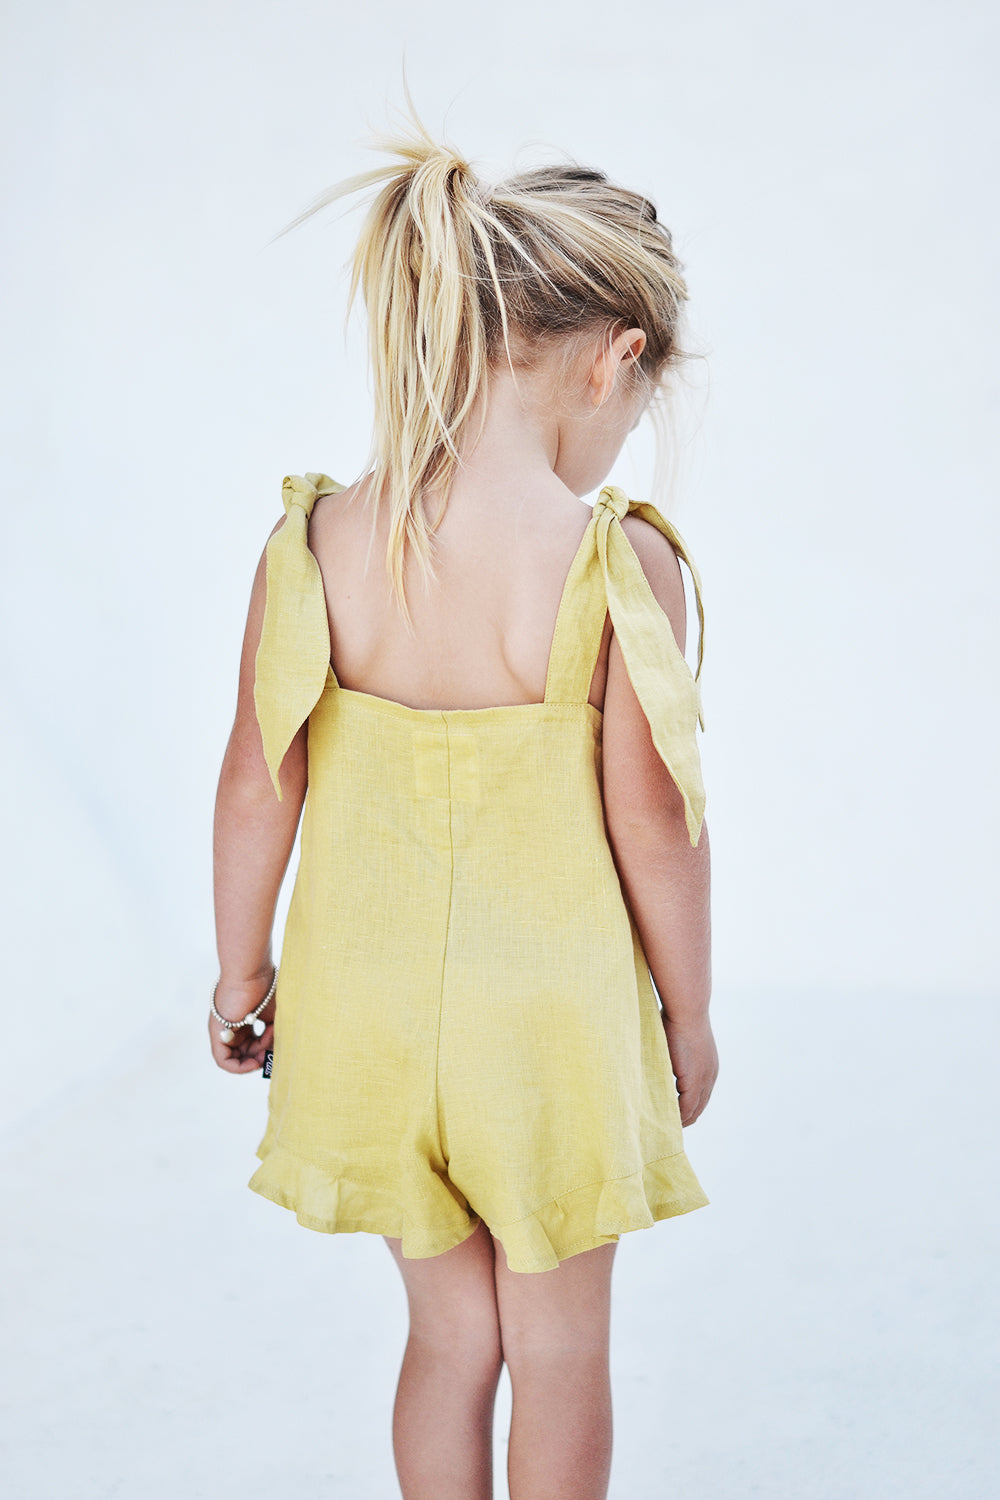 SUNFLOWER MINI PLAYSUIT - OLAS SUPPLY CO.